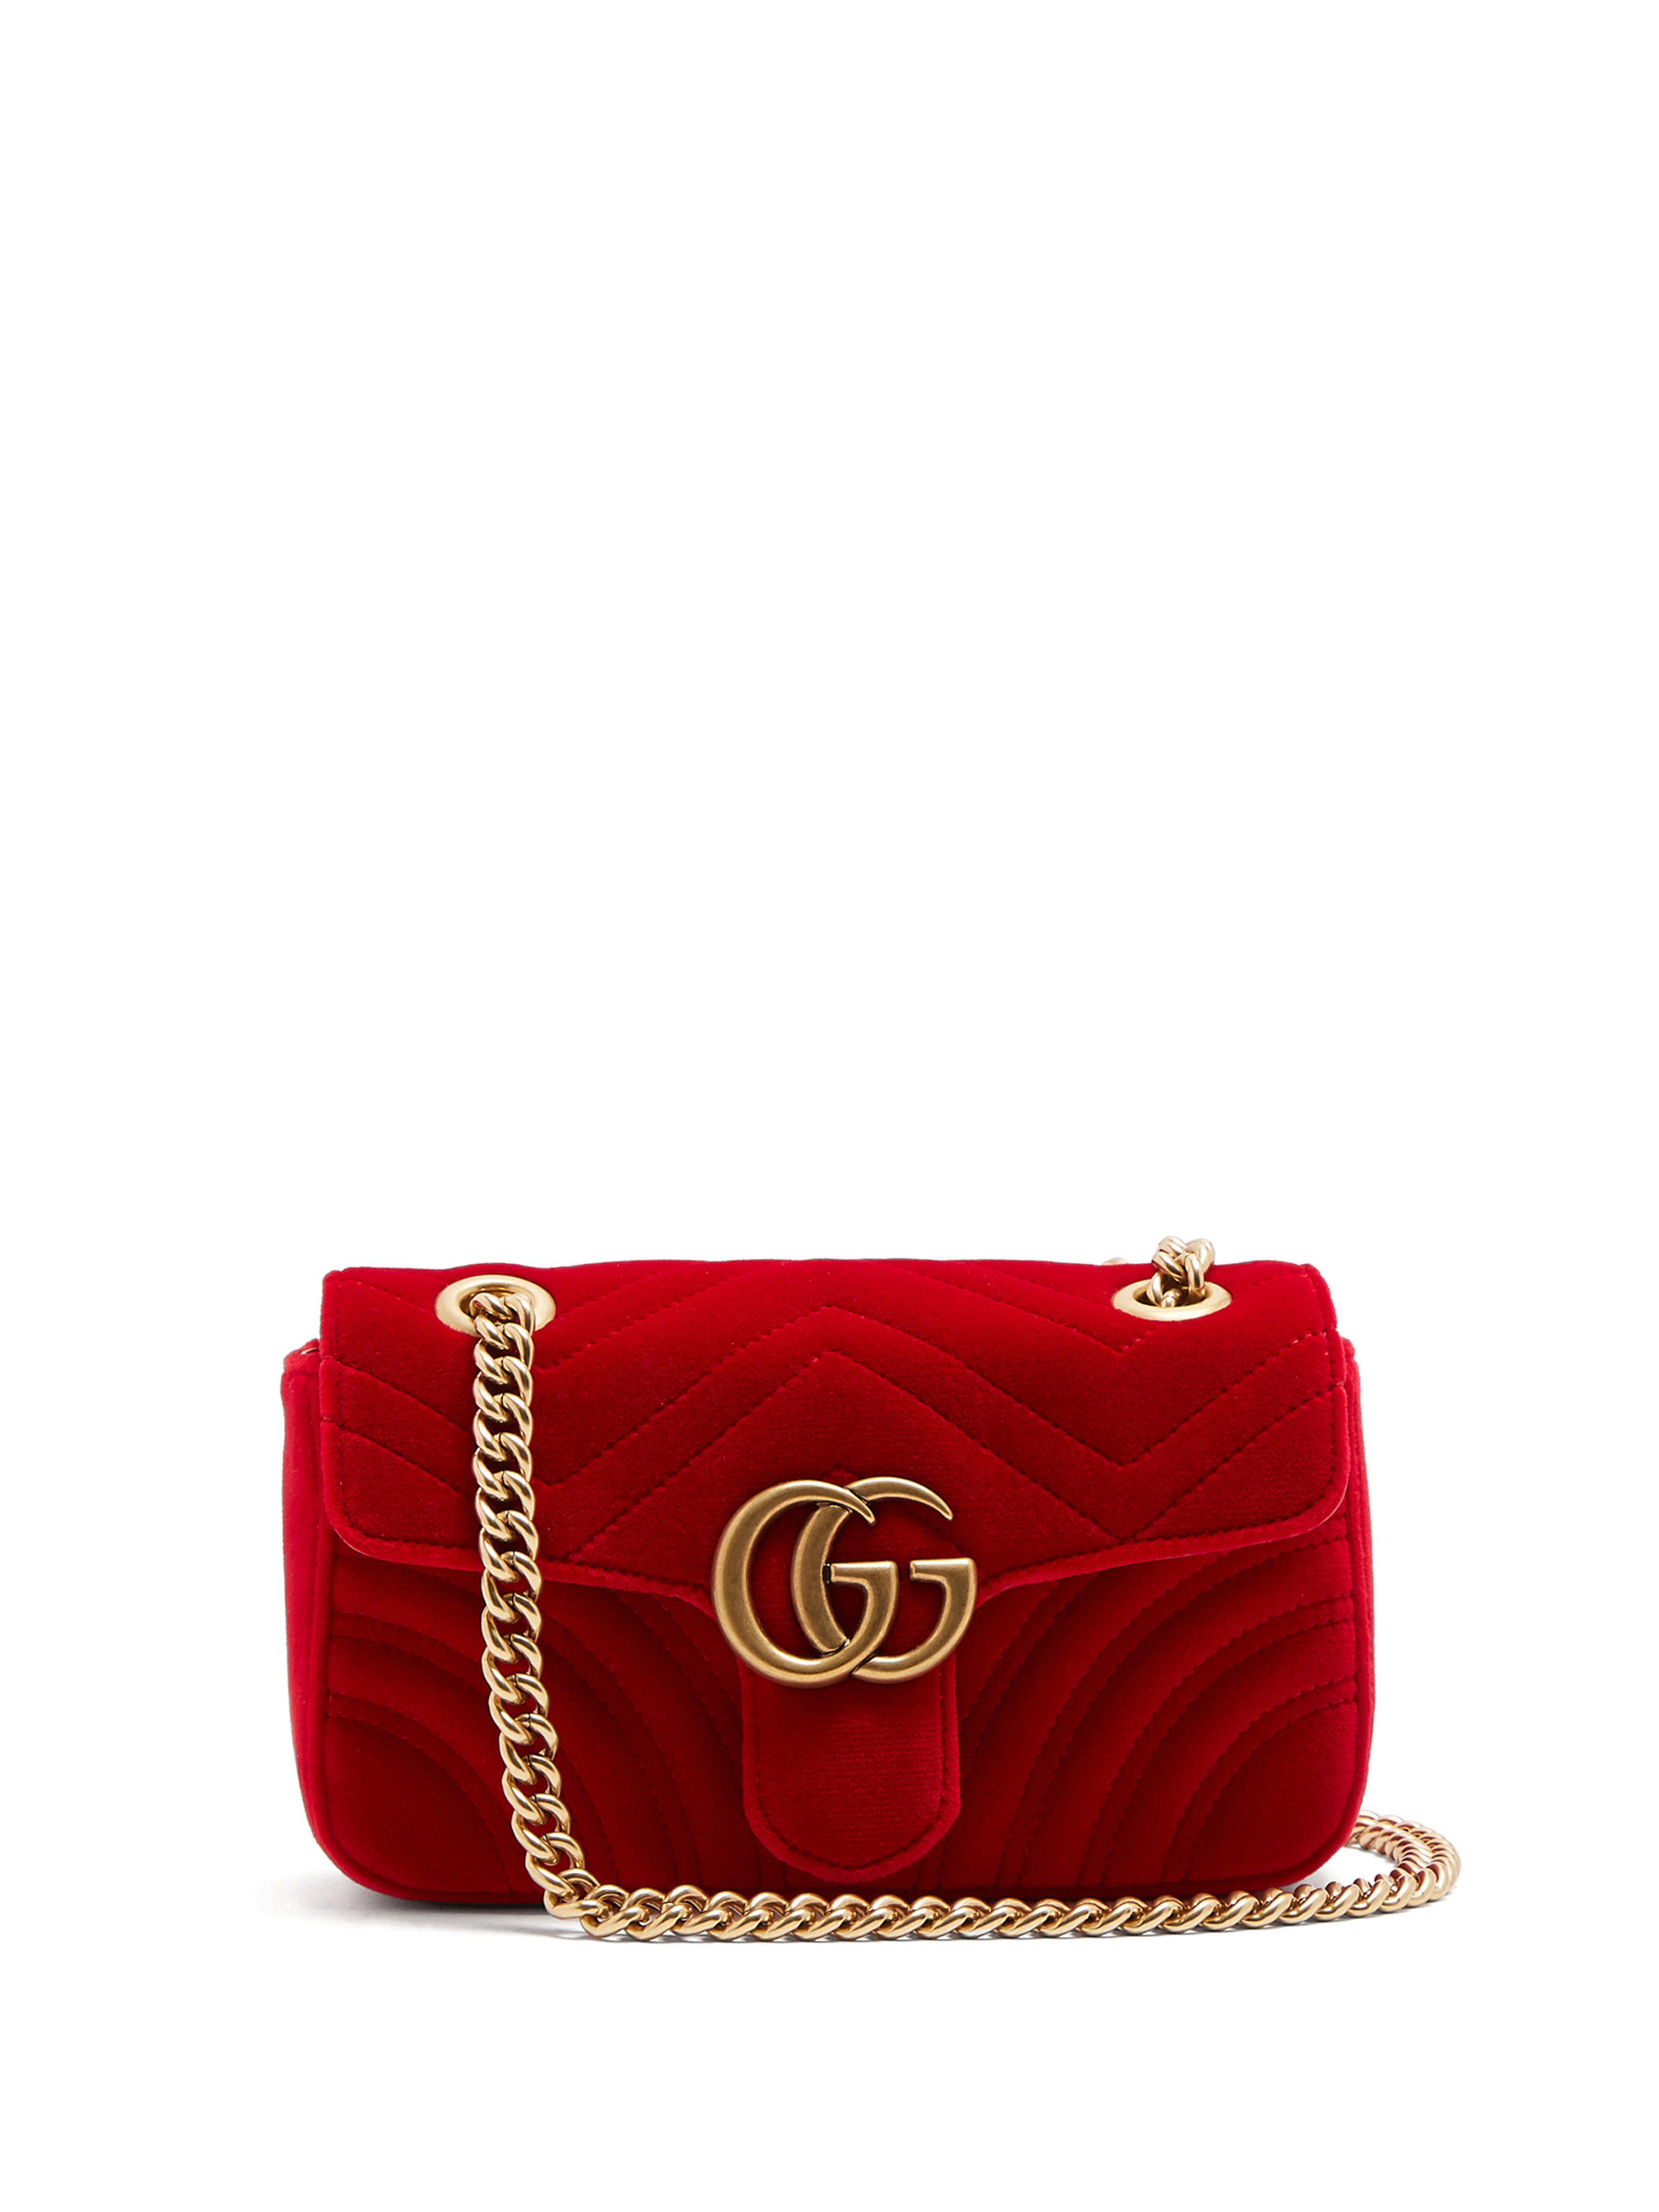 70a63e25cd258 Gucci Gg Marmont Mini Quilted Velvet Cross Body Bag in Red - Lyst